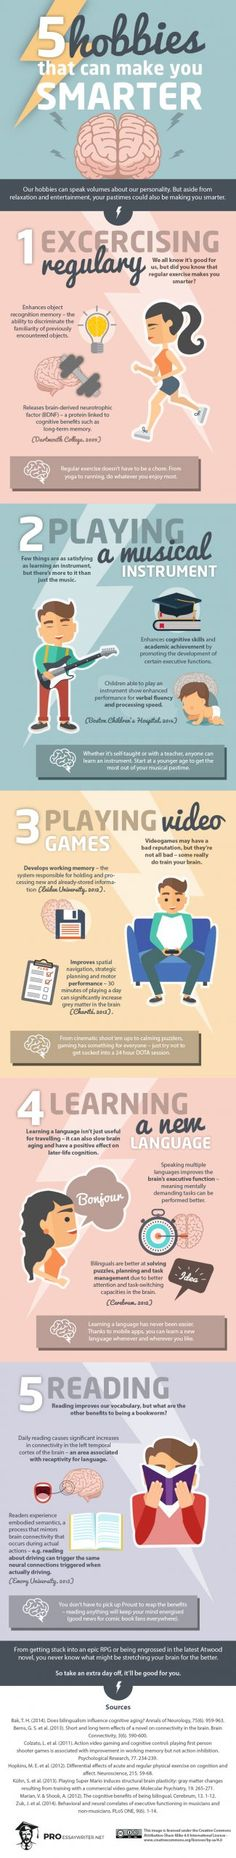 PROEssayWrtier.net put together an infographic outlining 5 hobbies that can make you smarter. The good news is you can do some without leaving your couch.